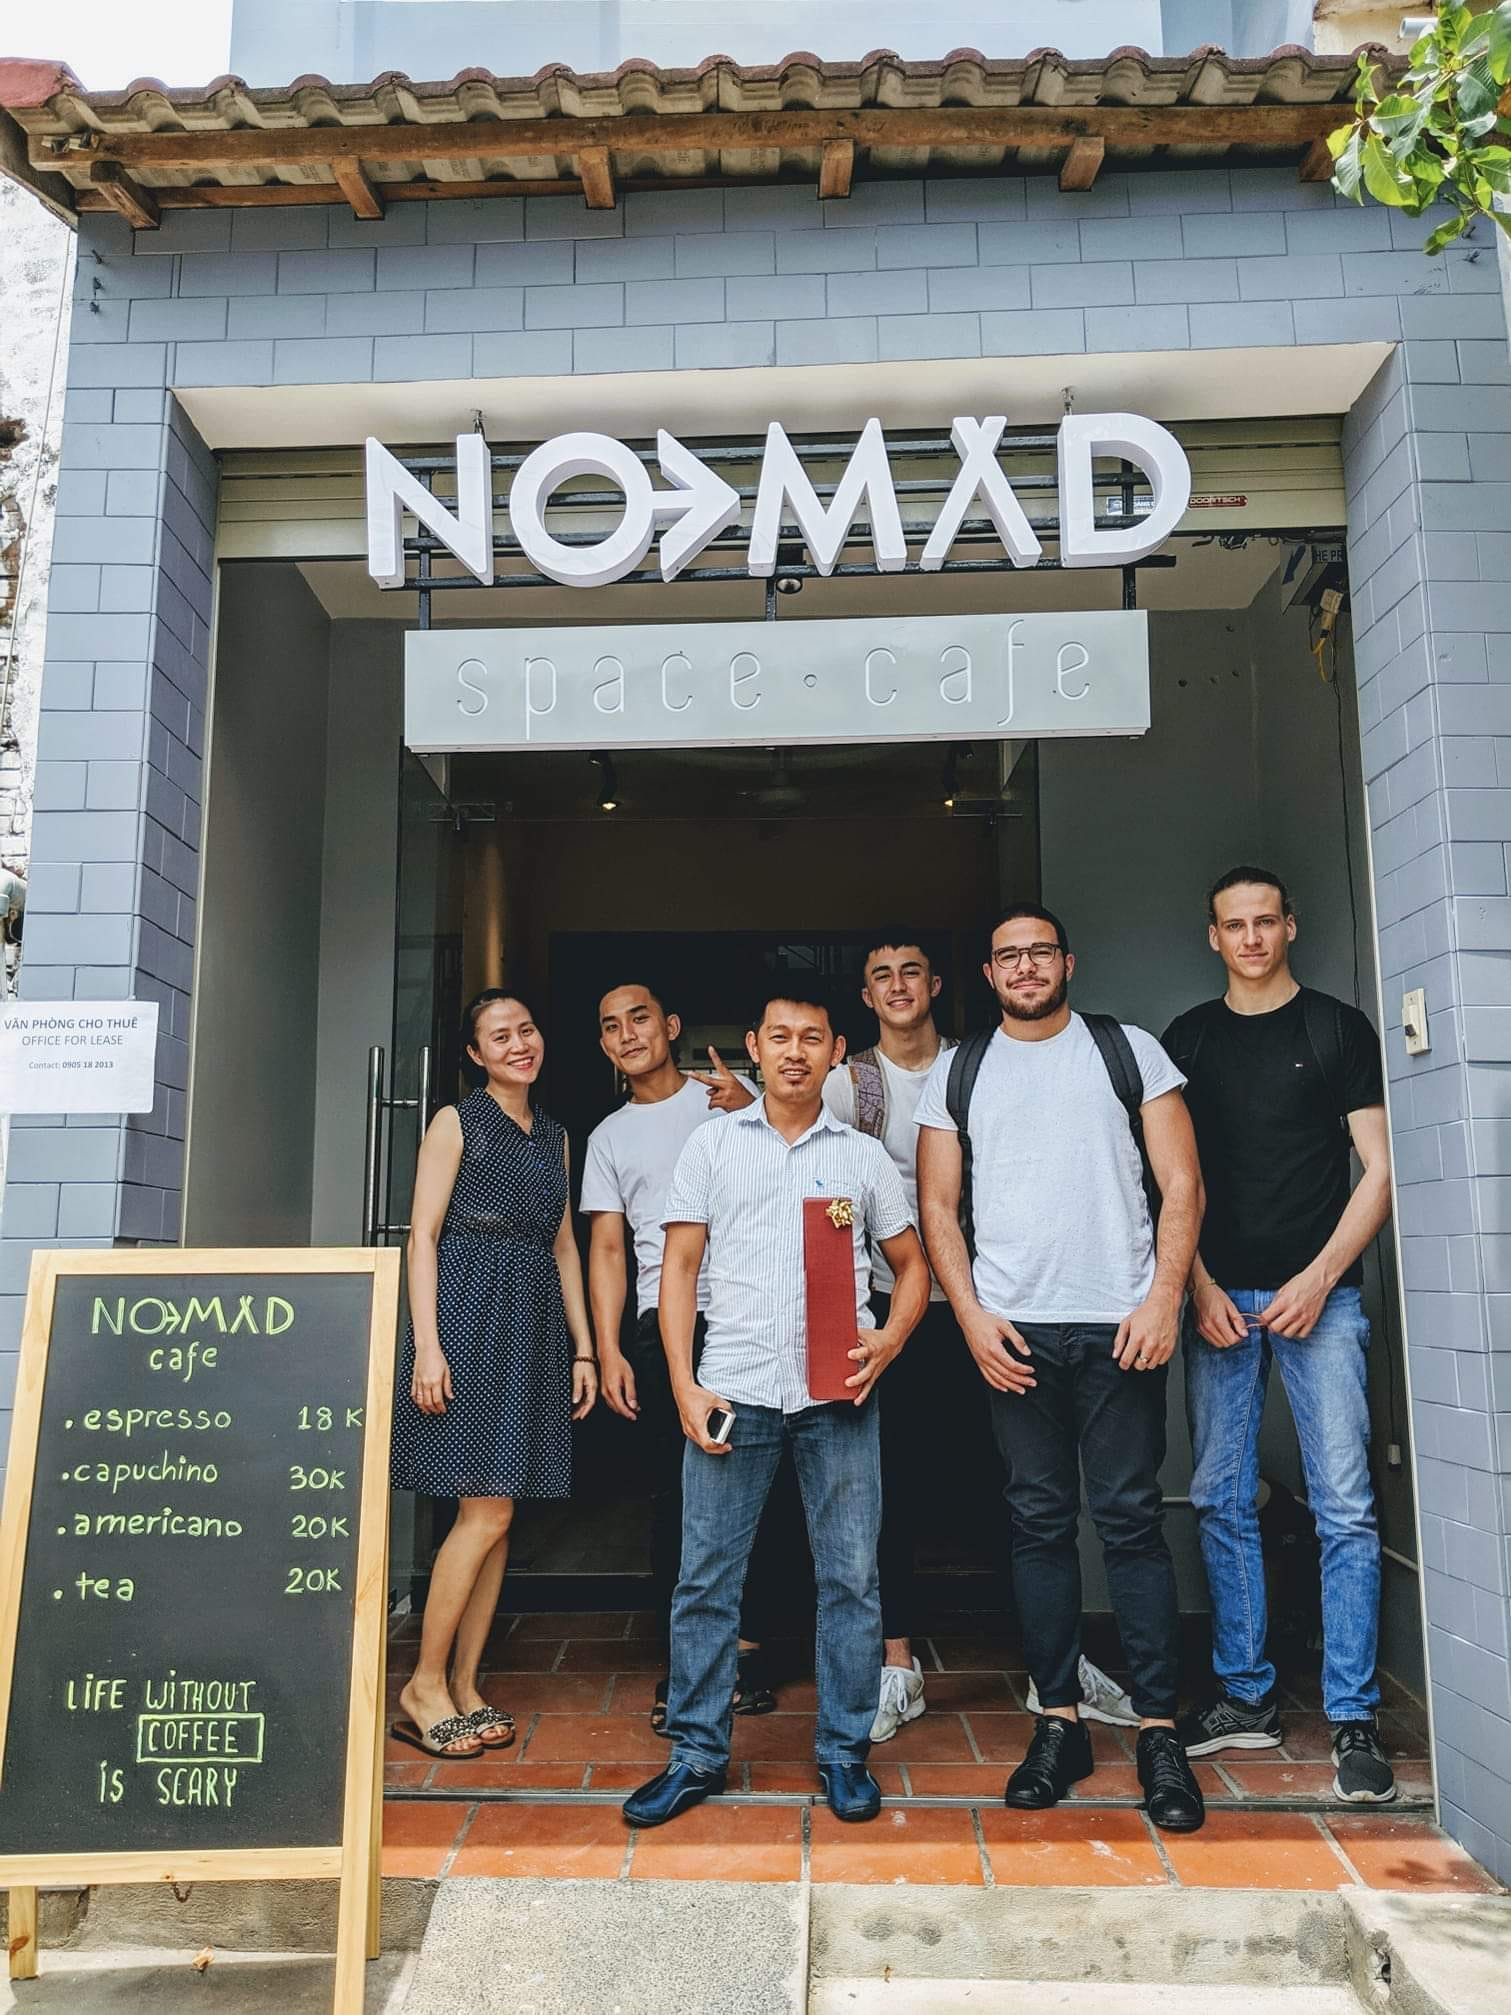 Nomad Space